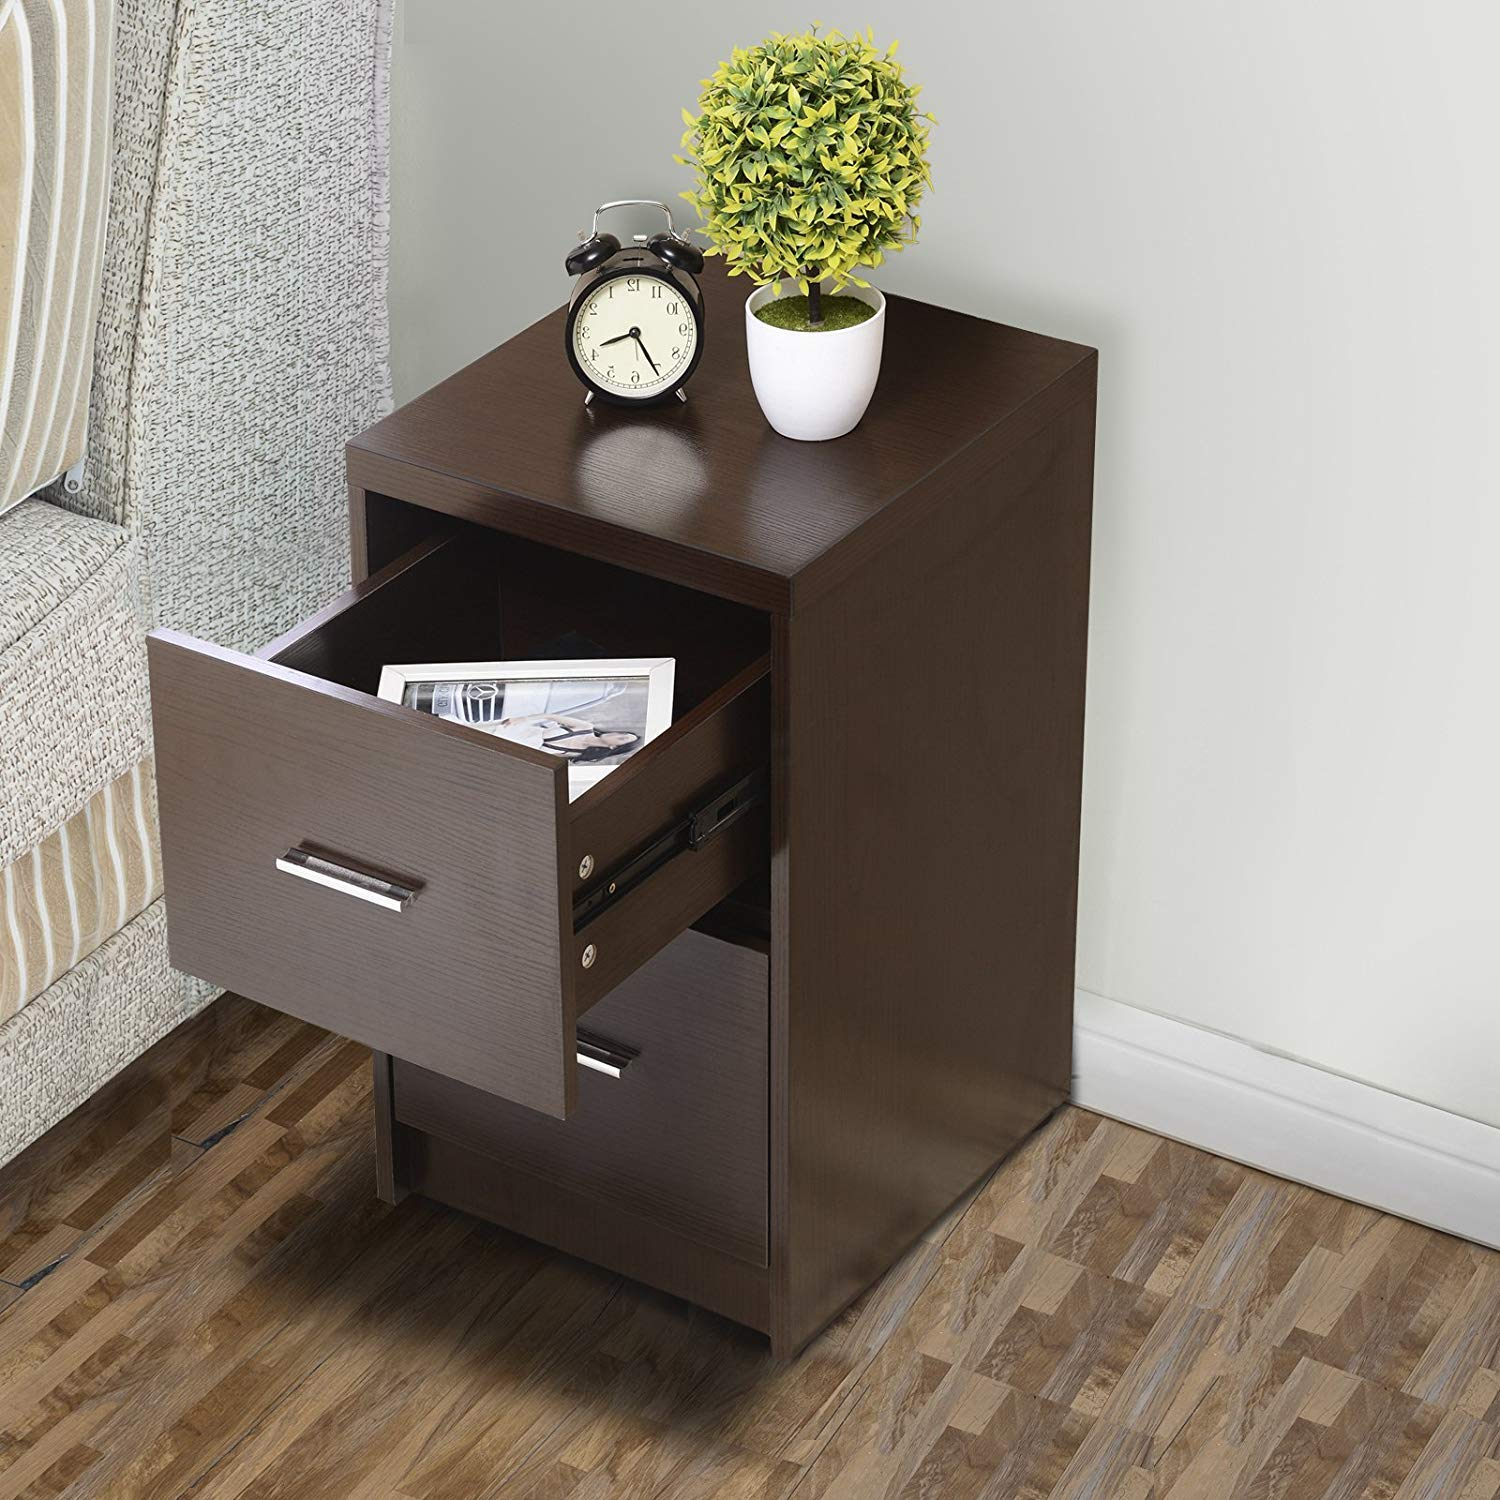 mecor nightstands end table with drawers mdf square winsome ava accent drawer black finish bedroom furniture espresso set kitchen dining cool bedside tables ikea garden shelf